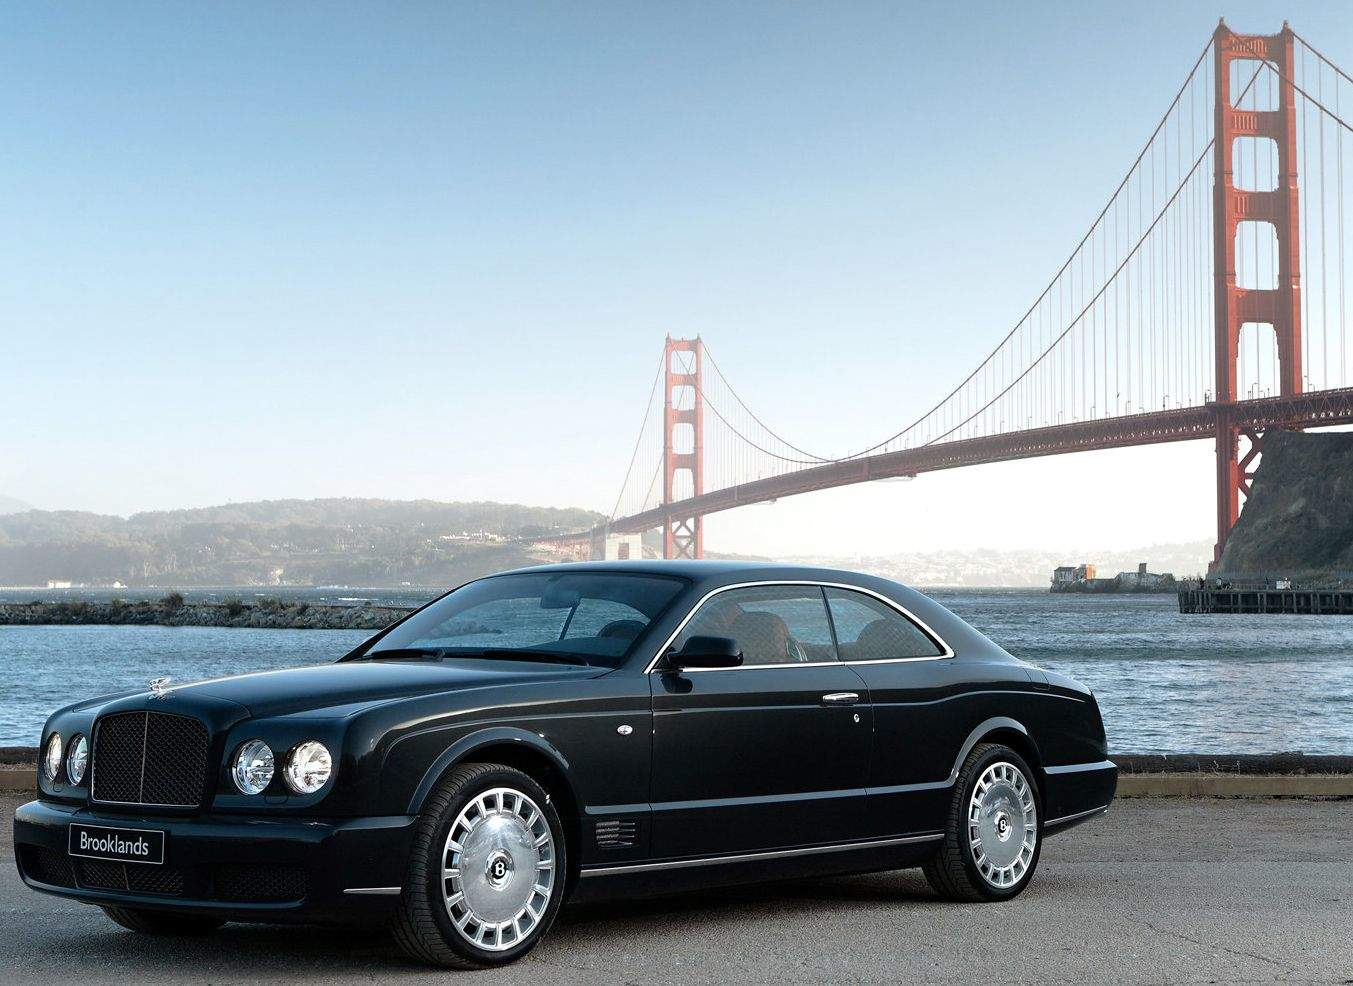 jonathan-ive-bentley-brooklands